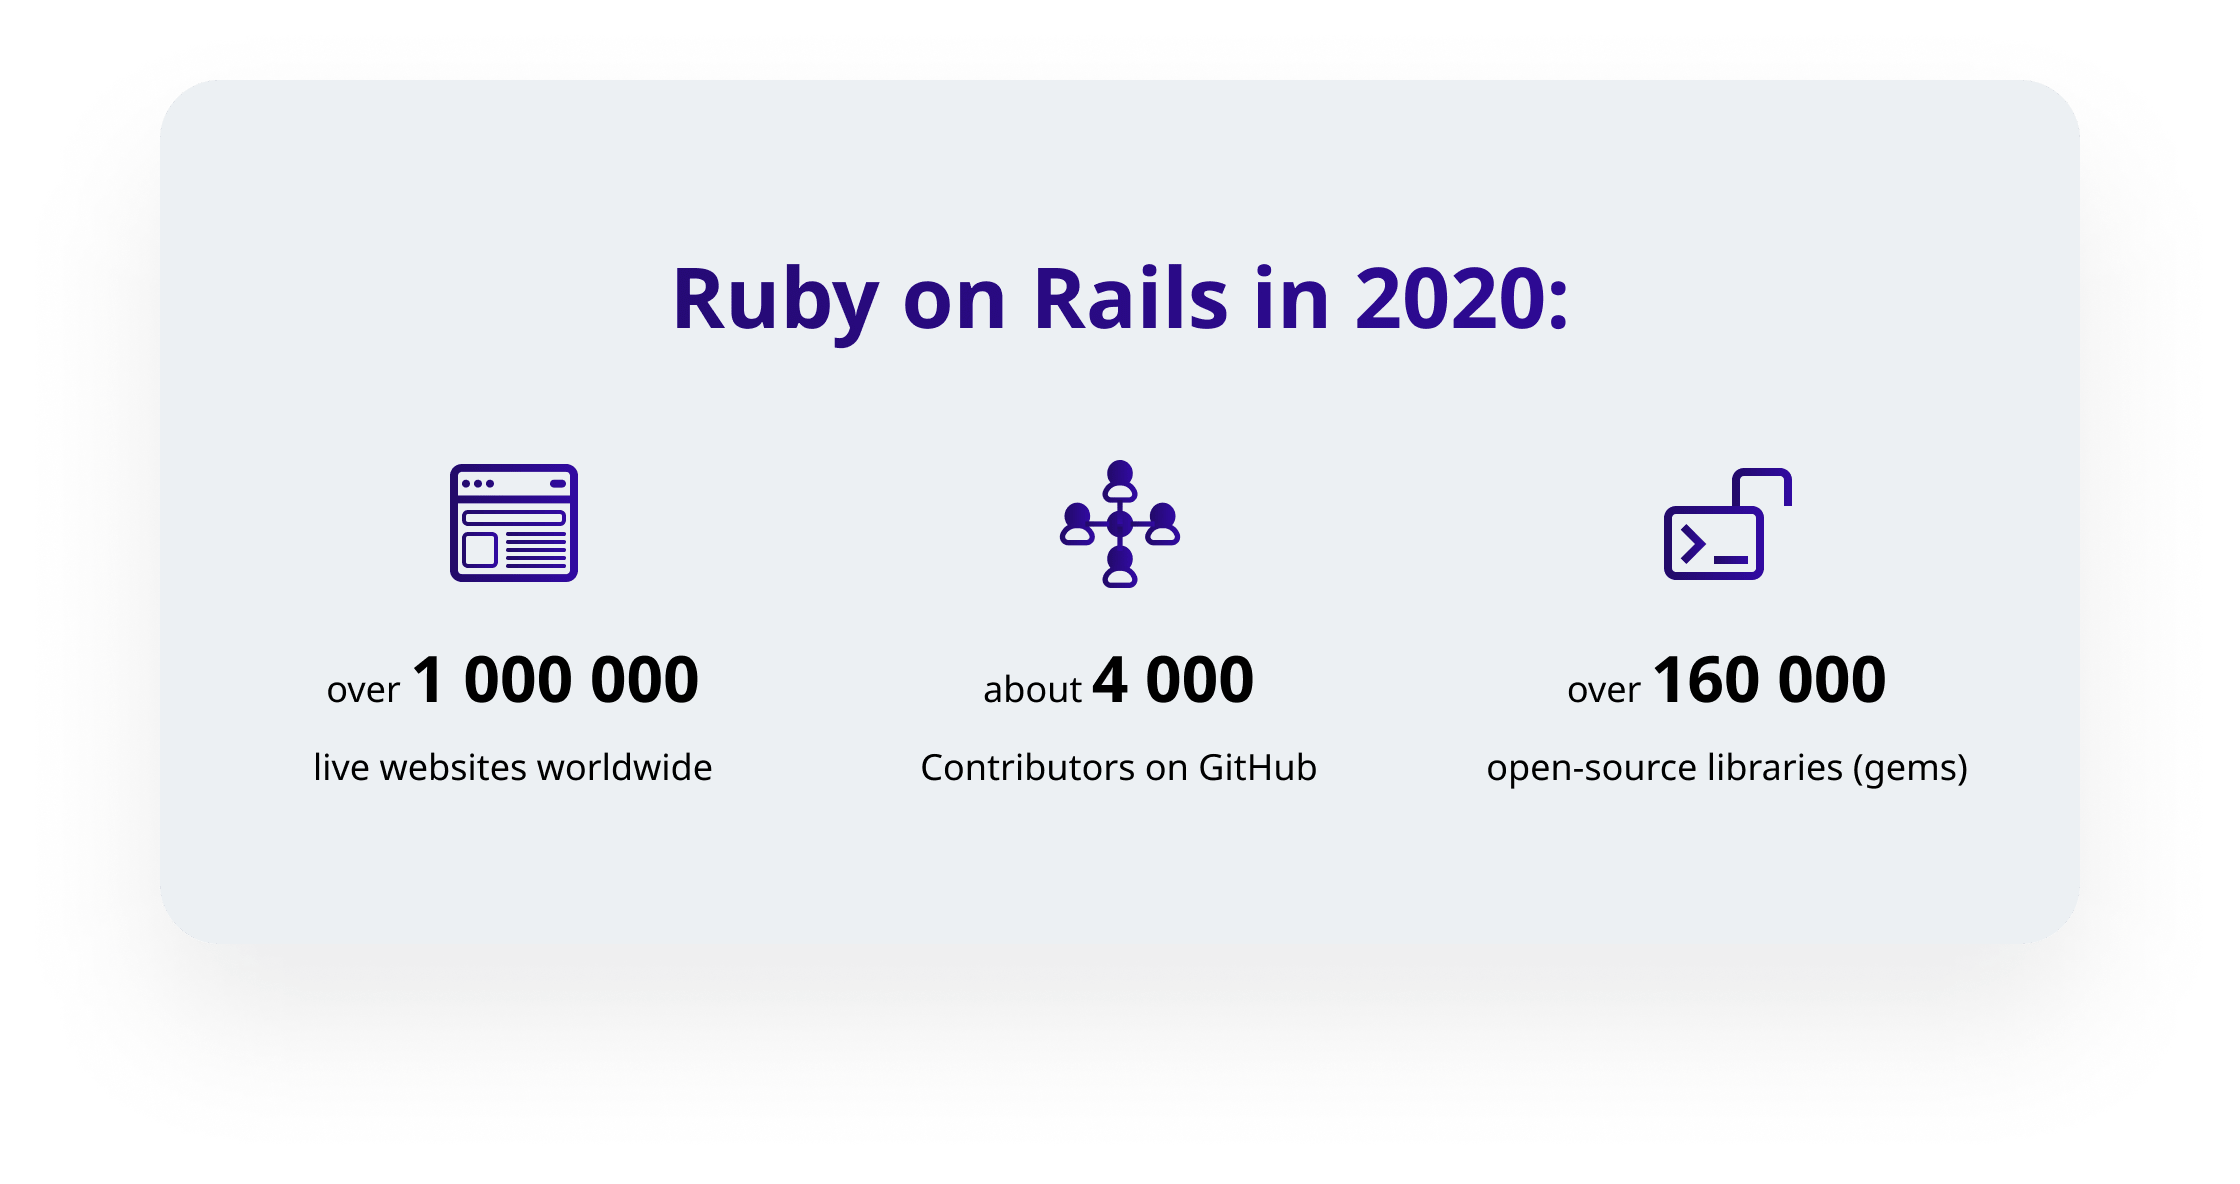 Is Ruby on Rails dying or already dead?